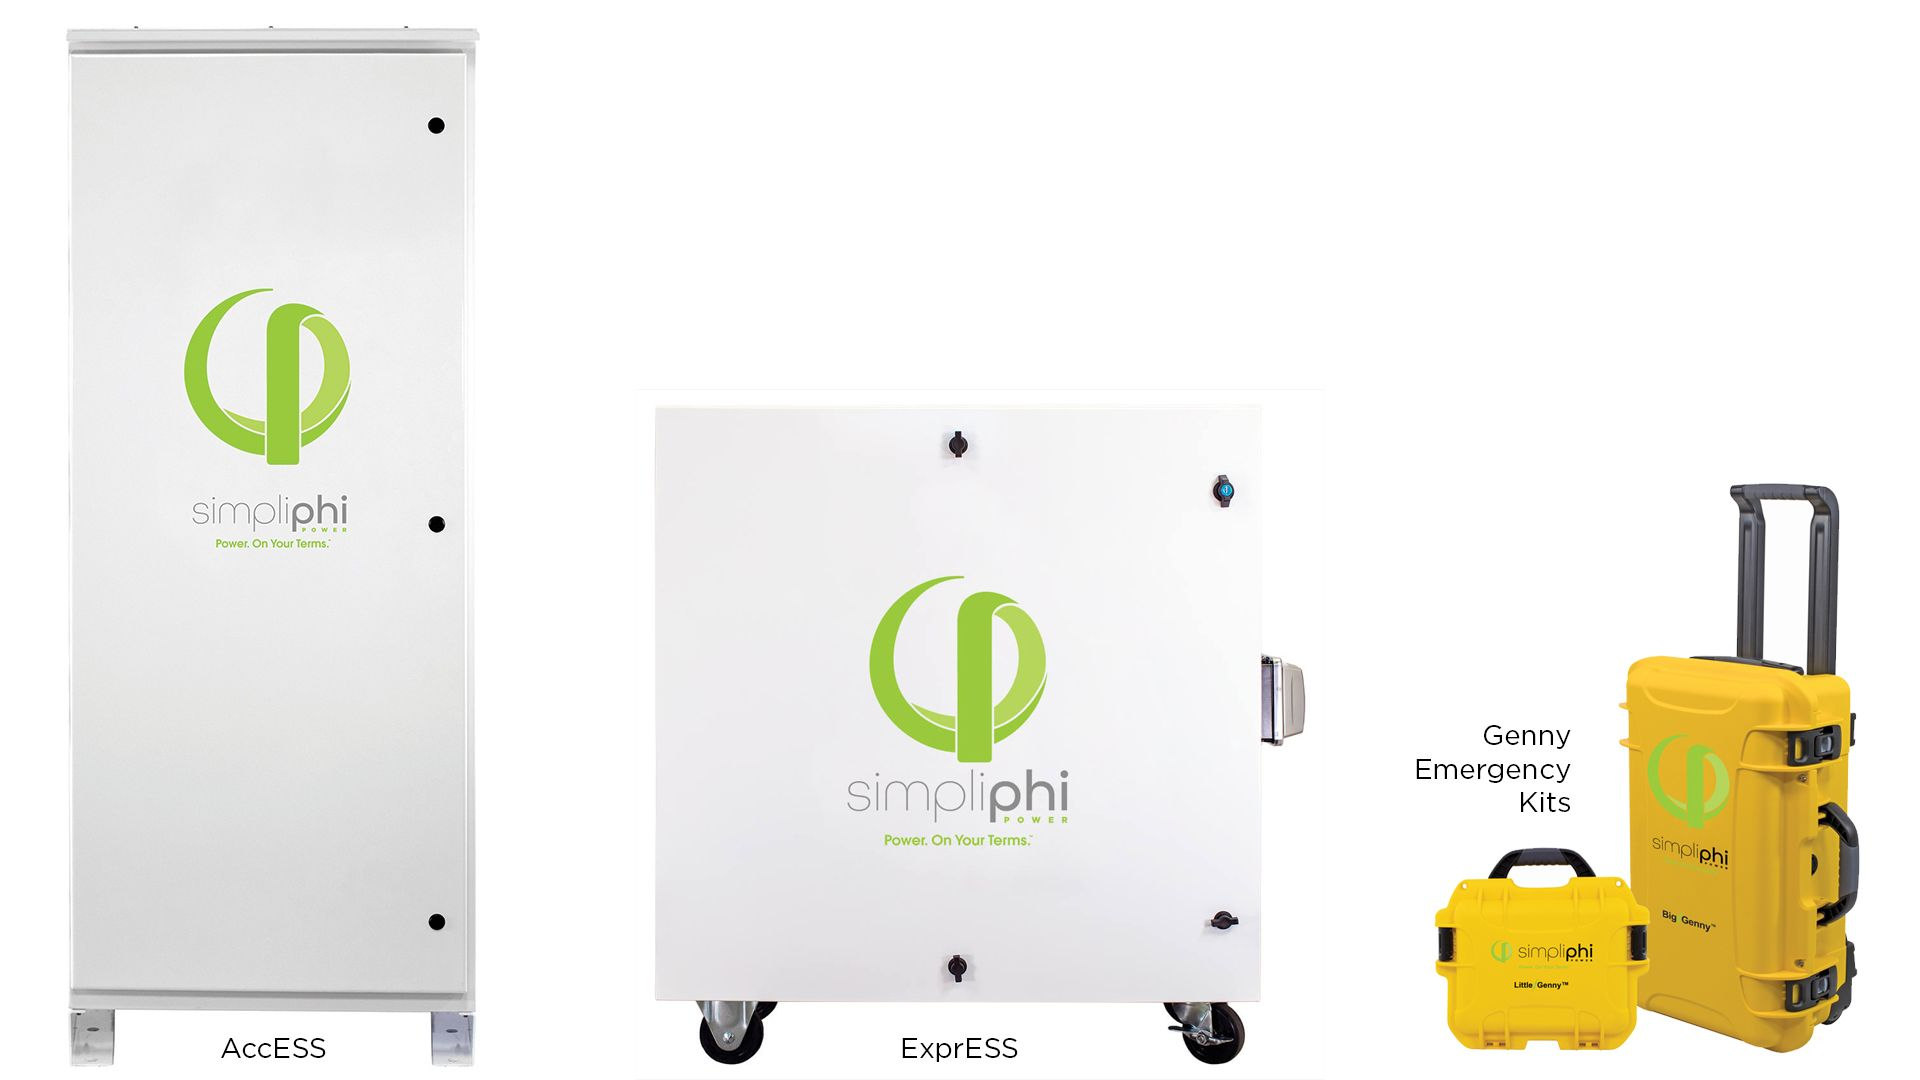 Simpliphi Offers Discounted Energy Storage Systems In Response To